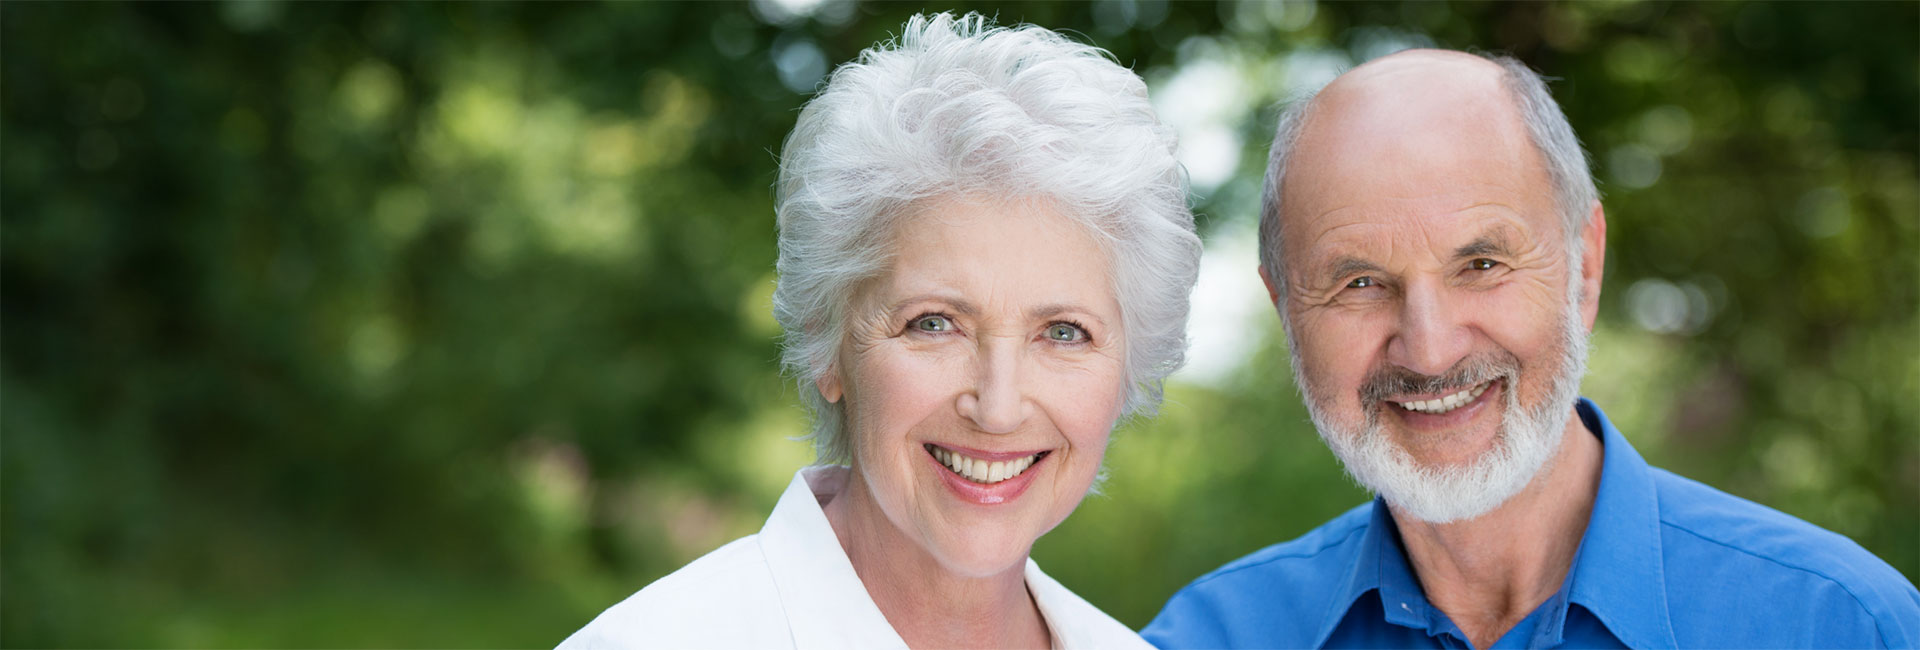 Smiling Elderly couple with great teeth